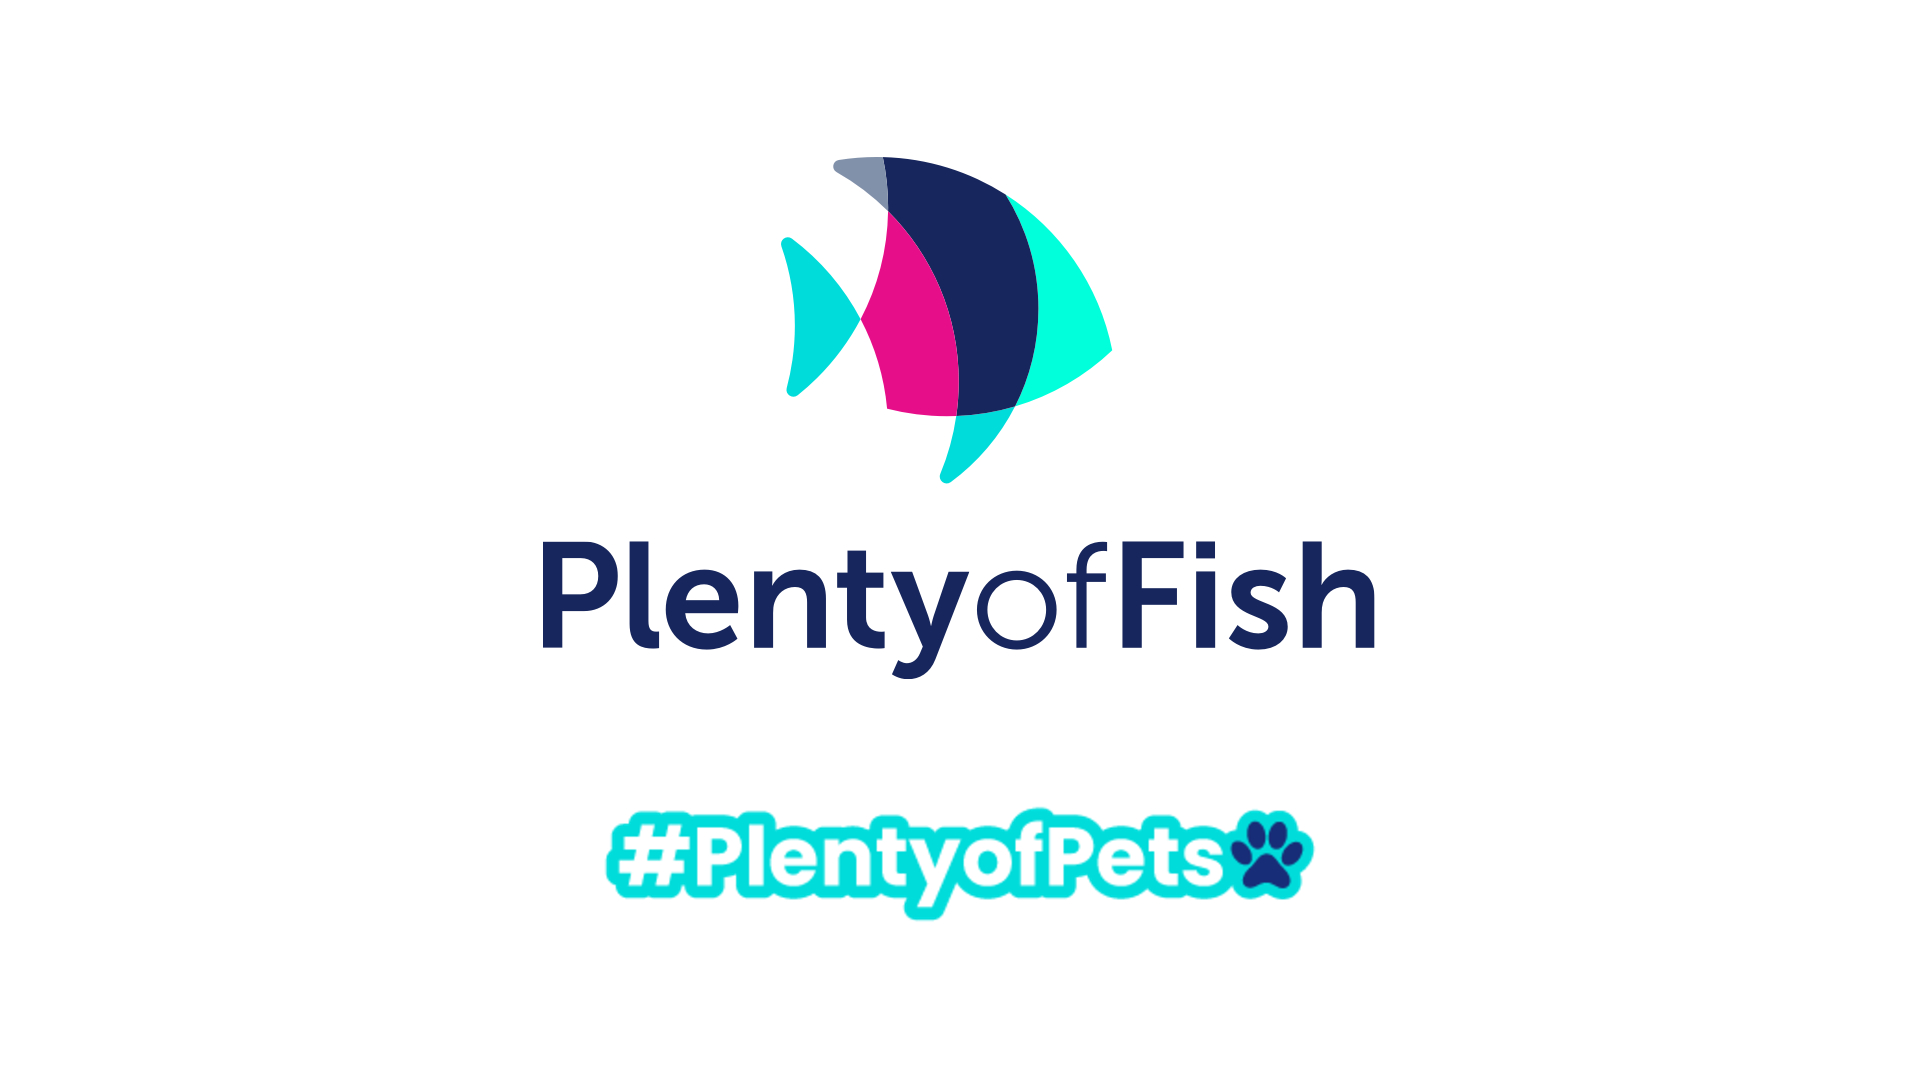 'Plenty Of Pets' Livestreaming Campaign to Connect Singles Over Love of Animals